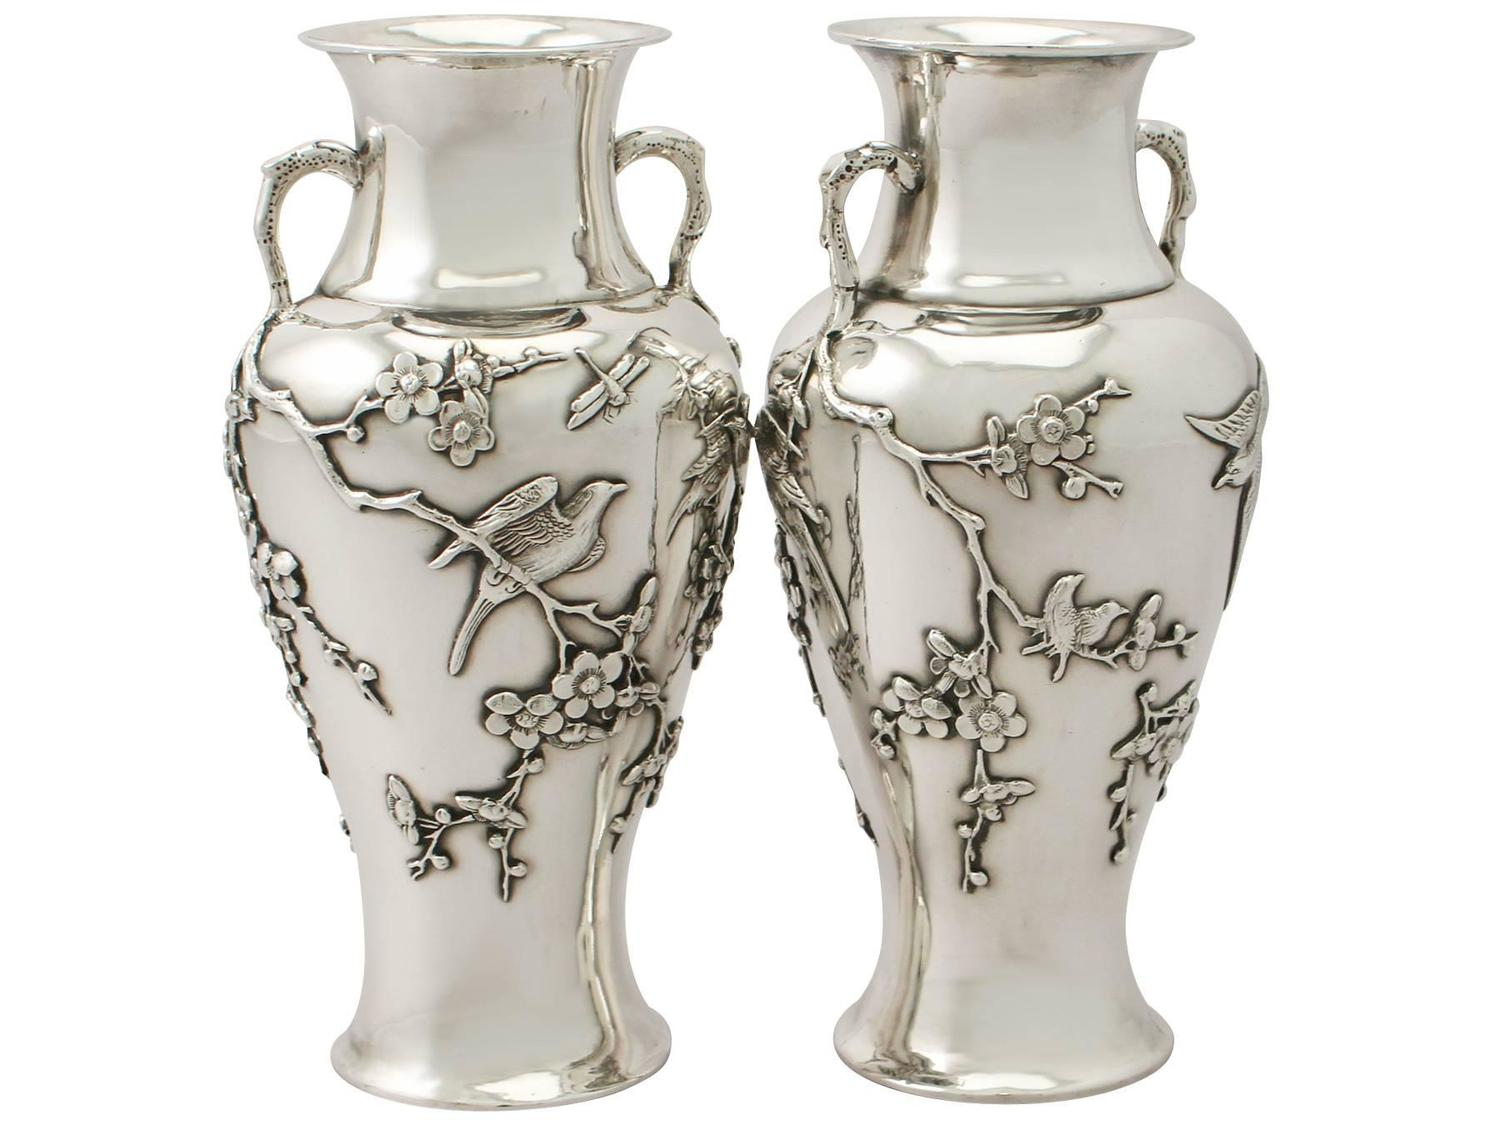 pair of chinese export silver vases antique circa 1890 for sale at 1stdibs. Black Bedroom Furniture Sets. Home Design Ideas